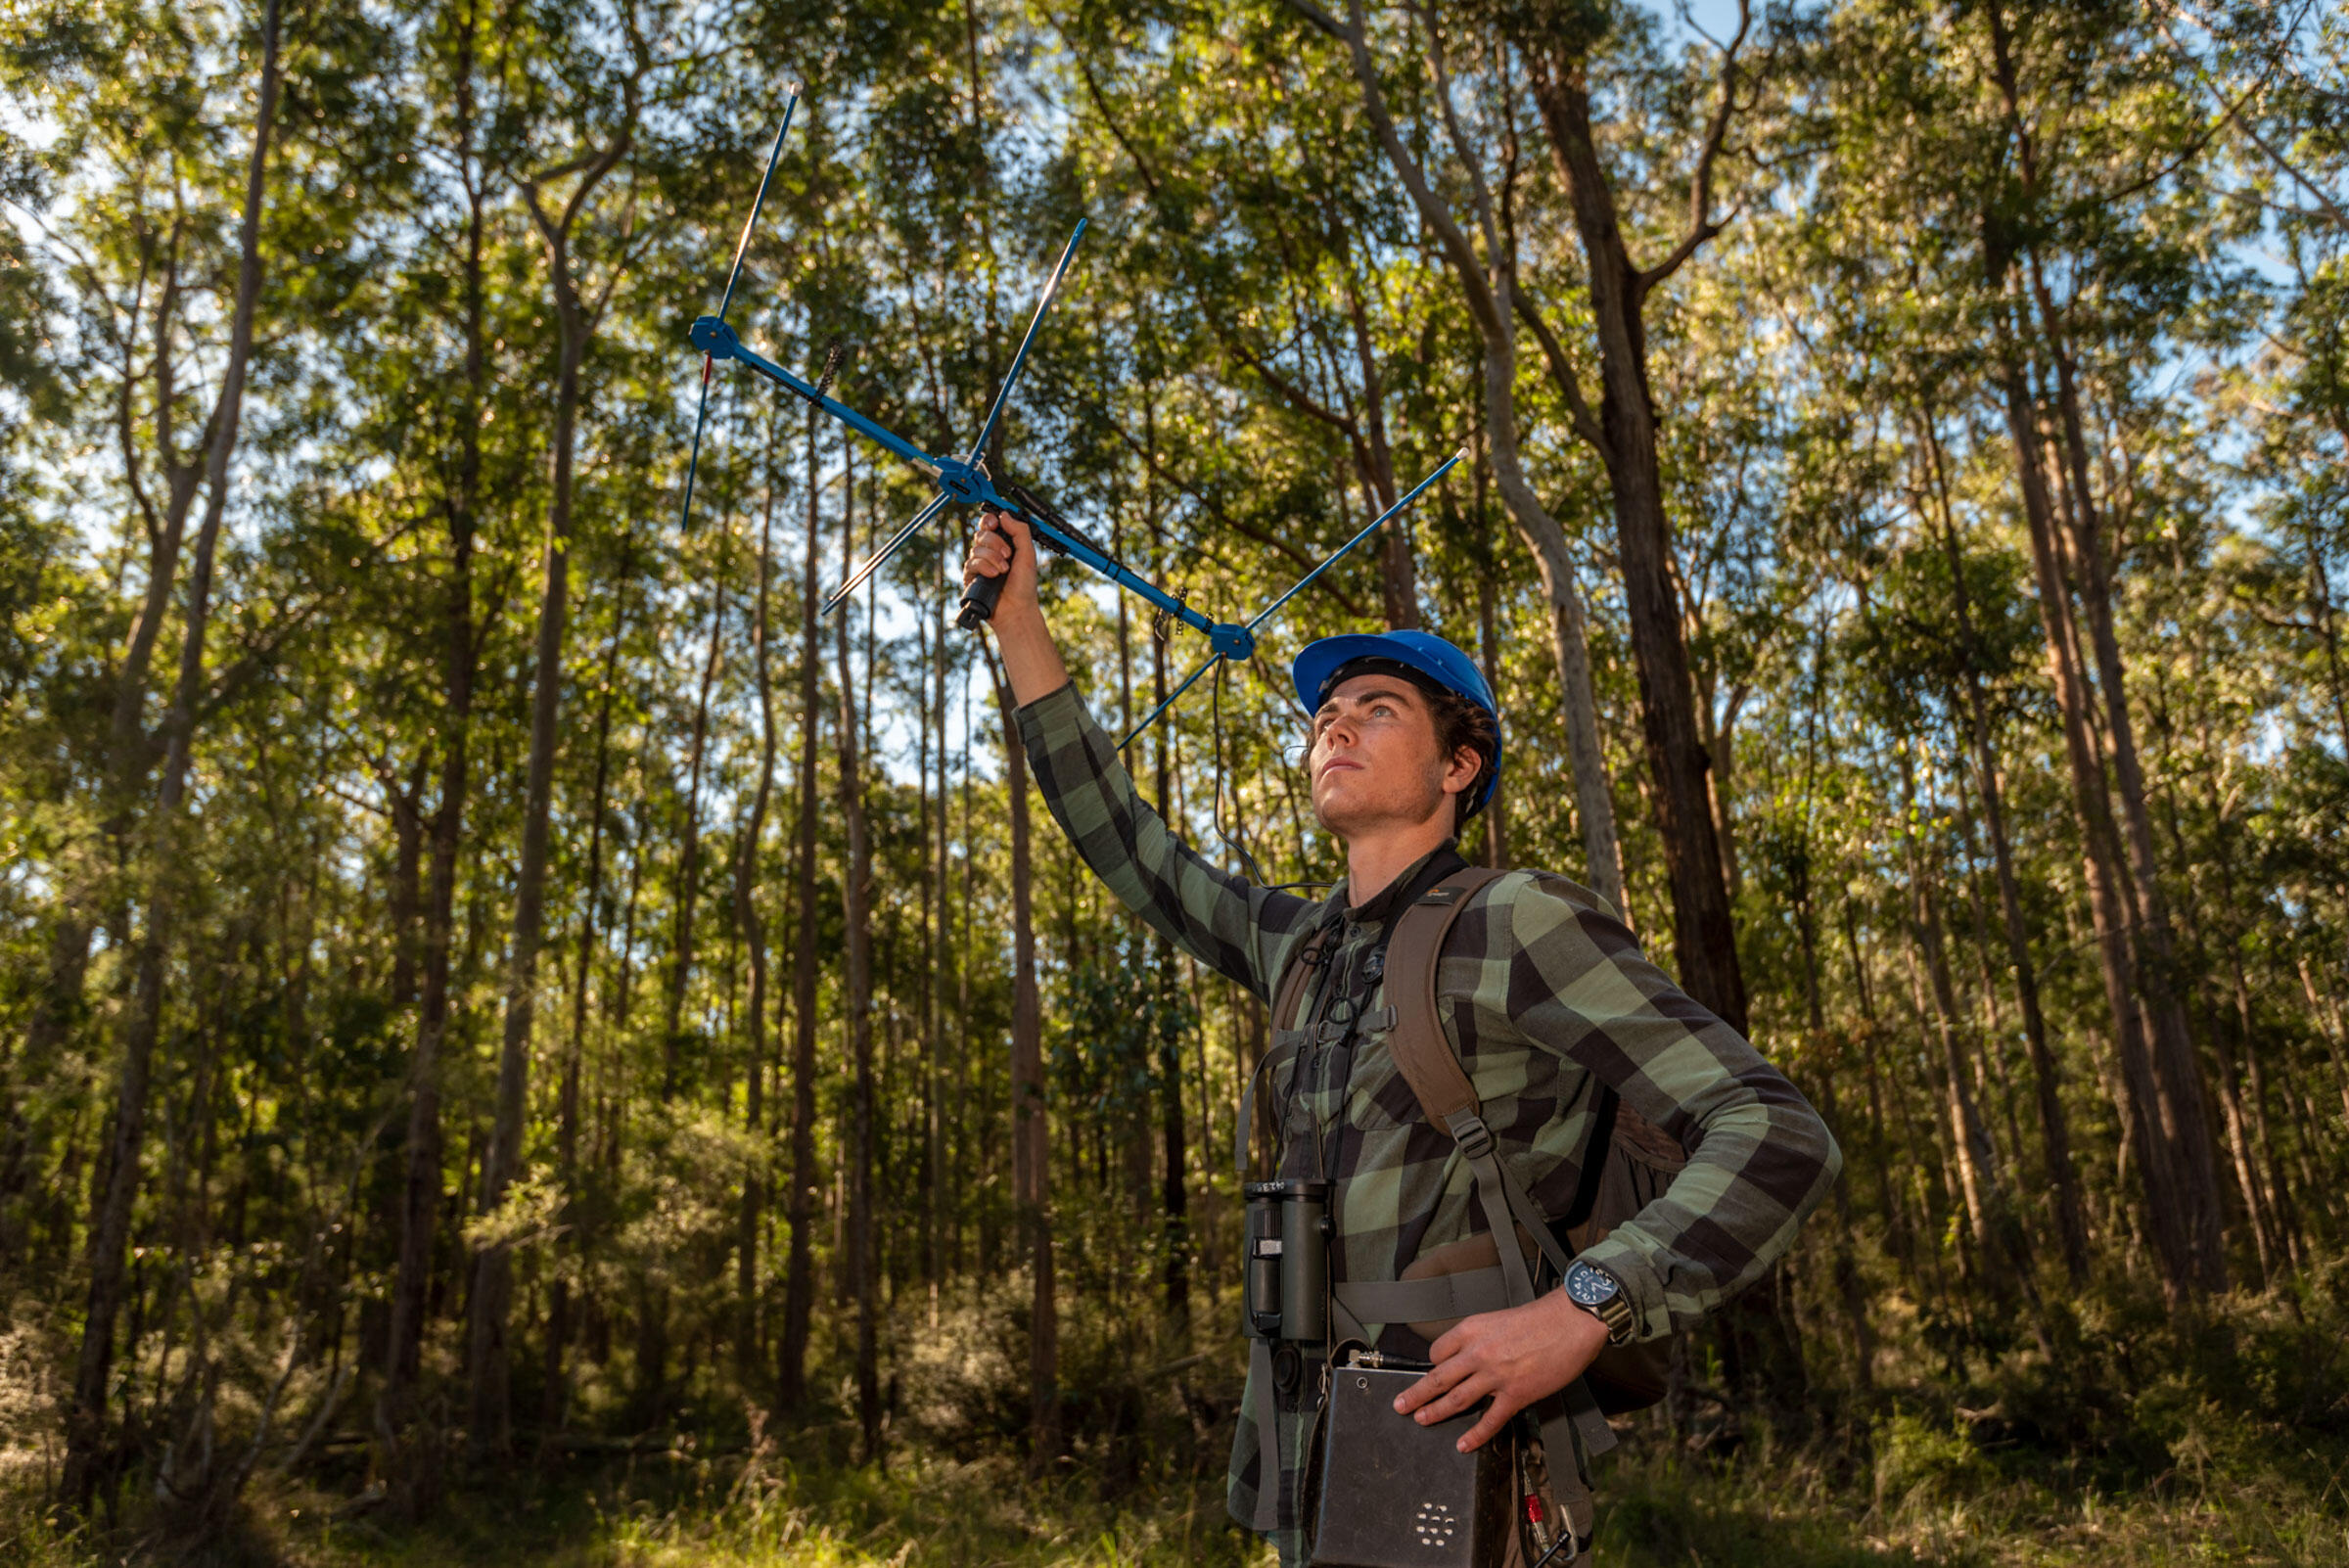 Lachlan Hall uses a wildlife tracking receiver to find and determine the location of the recently releases Regent Honeyeaters. Doug Gimesy